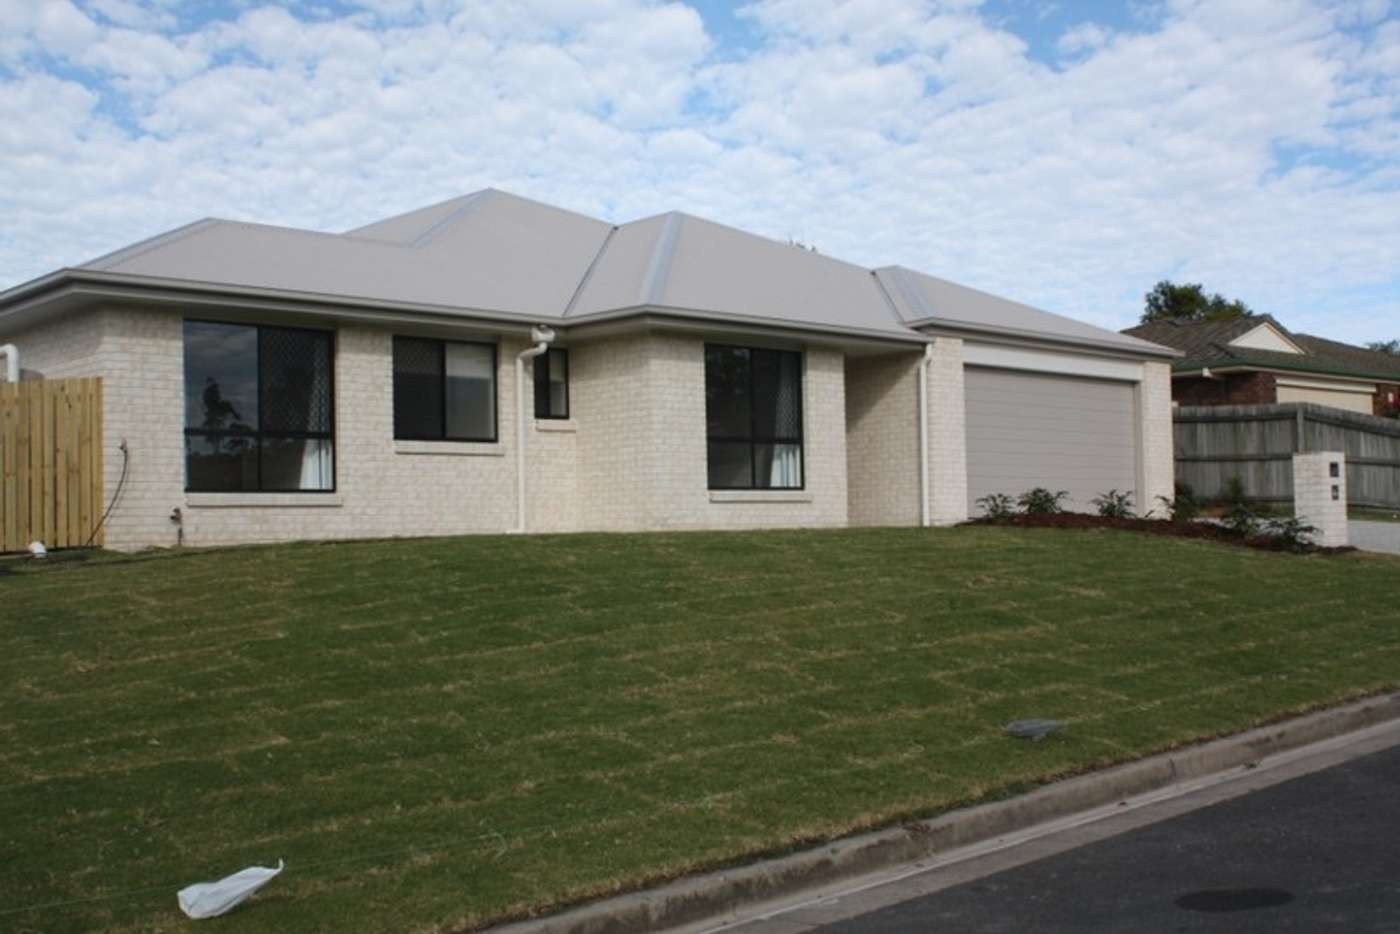 Main view of Homely house listing, 1/1 Chinook Court, Brassall QLD 4305